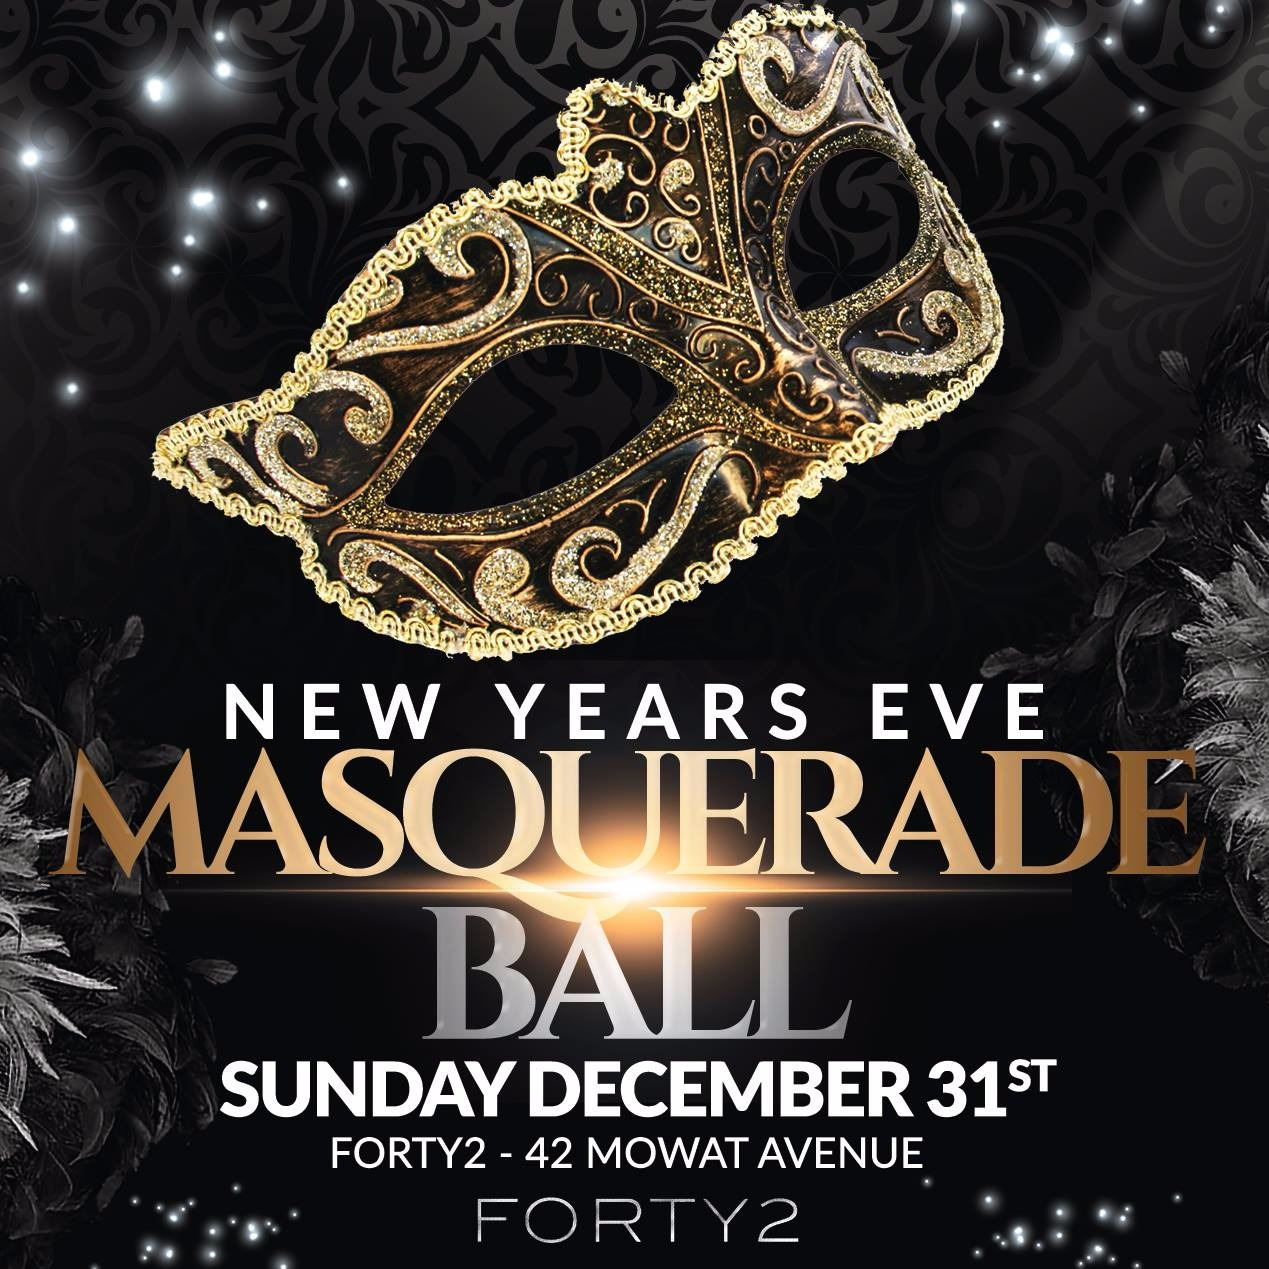 NYE Masquerade Ball @ Forty2 // Sun Dec 31st (19+)